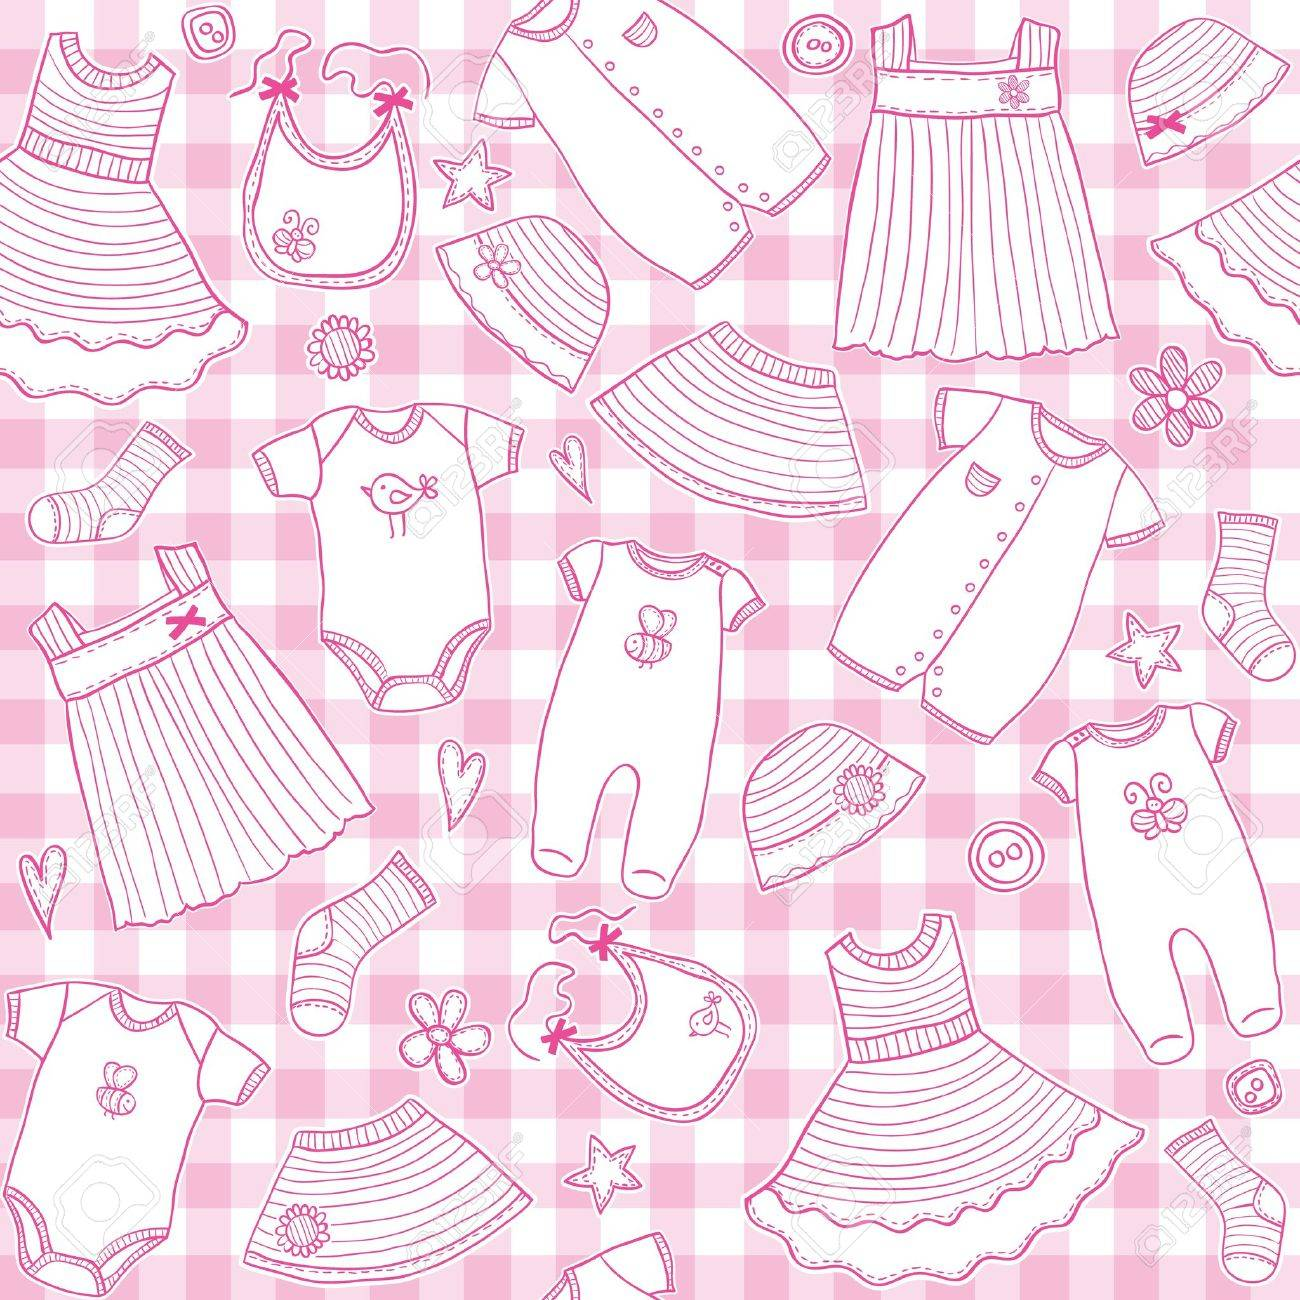 Baby girl clothes seamless pattern, vector illustration - 19295752